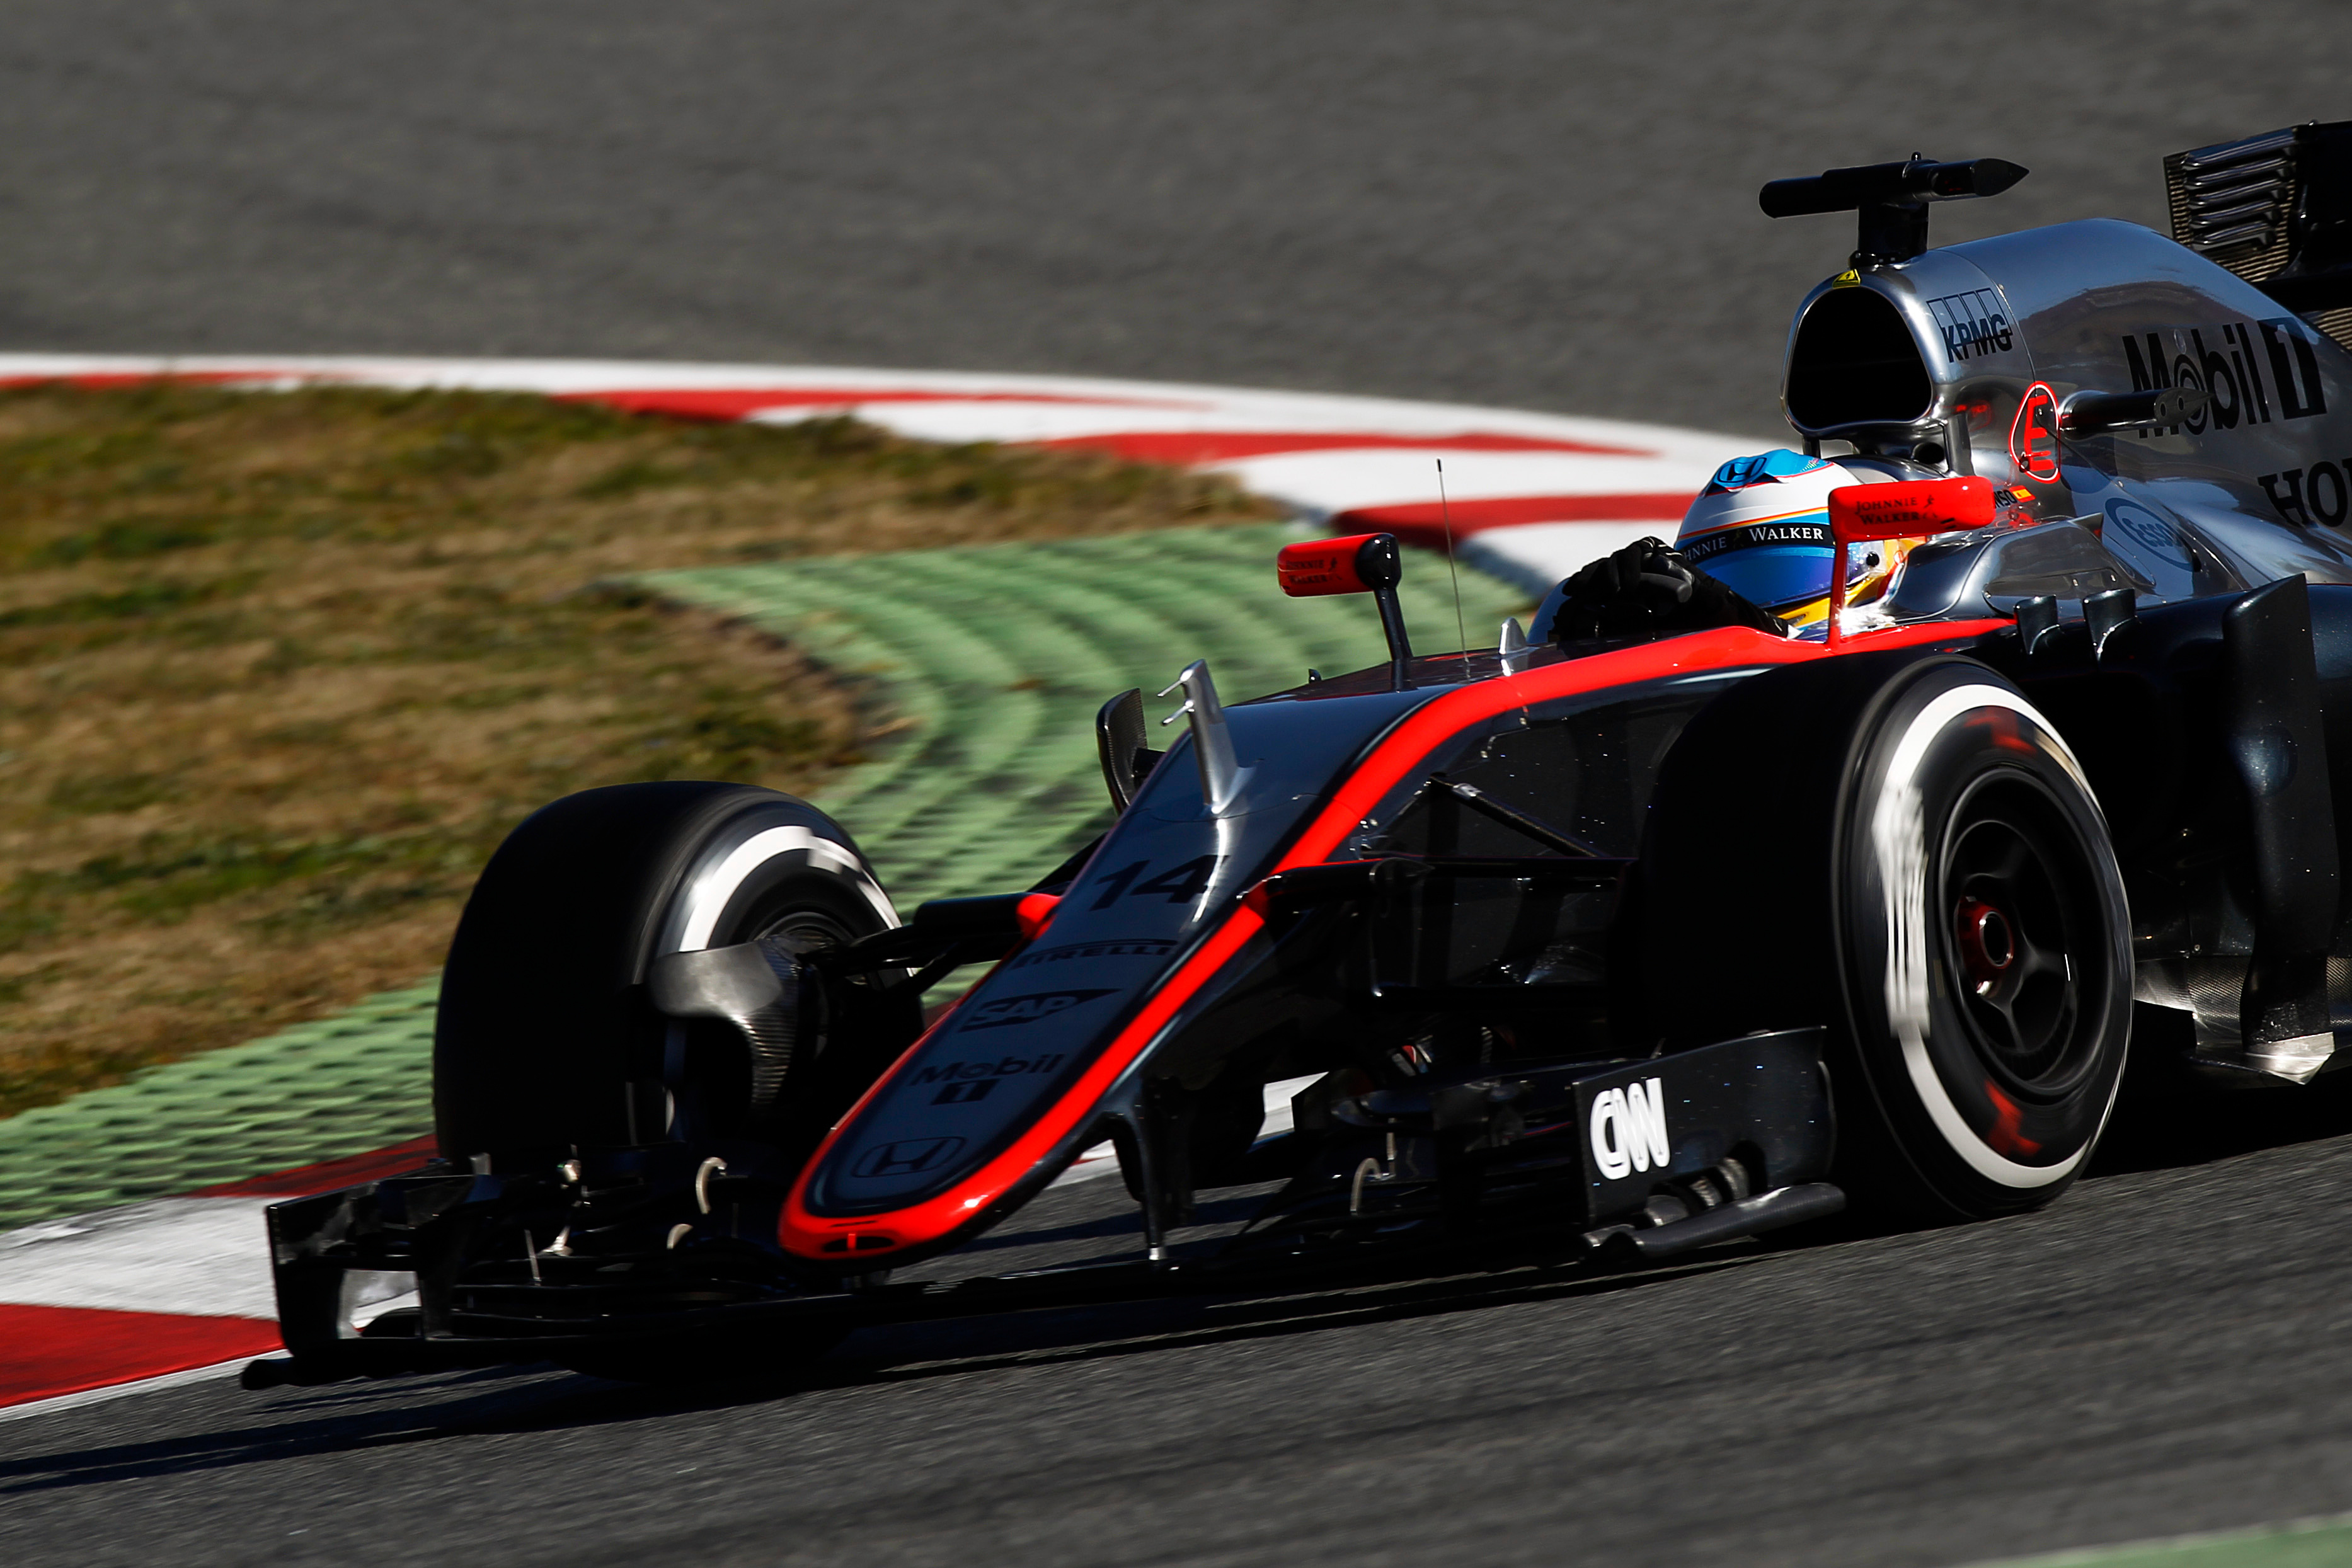 Fernando Alonso Crashes During F1 Testing Pictures, Photos ...